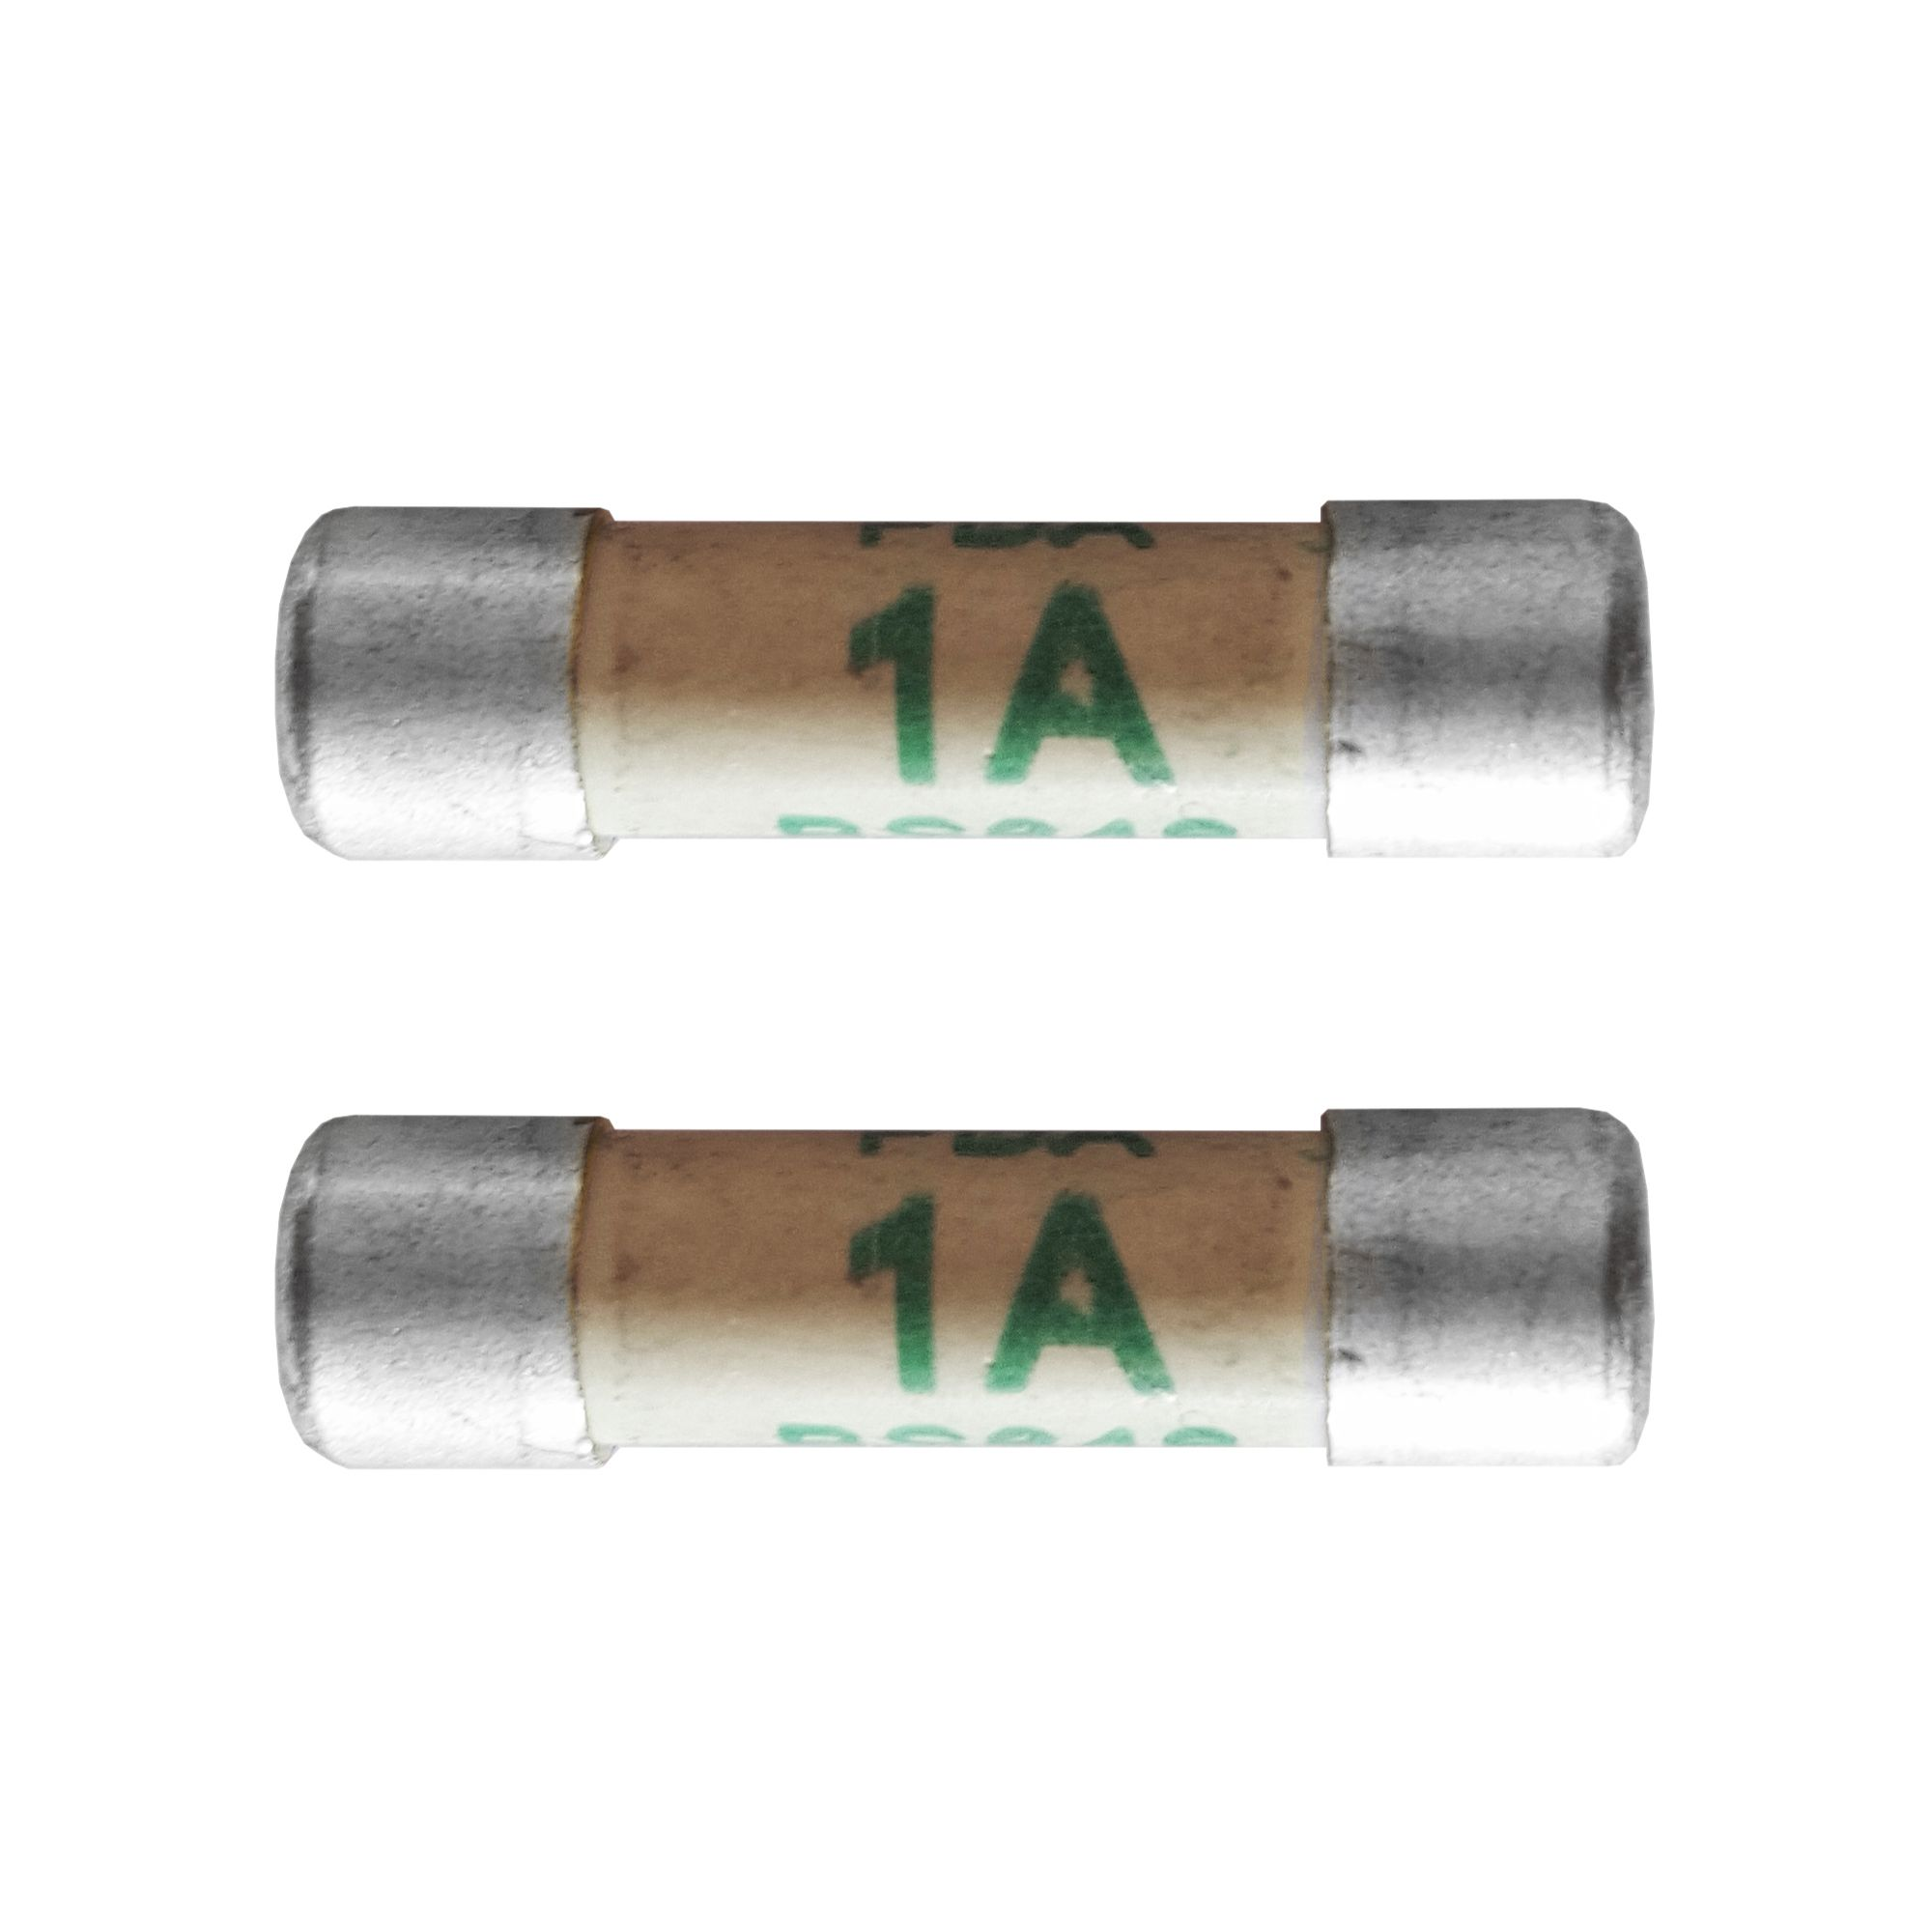 Corelectric 1a Fuse Pack Of 2 Departments Diy At Bq Carrier Blowing 3 Amp